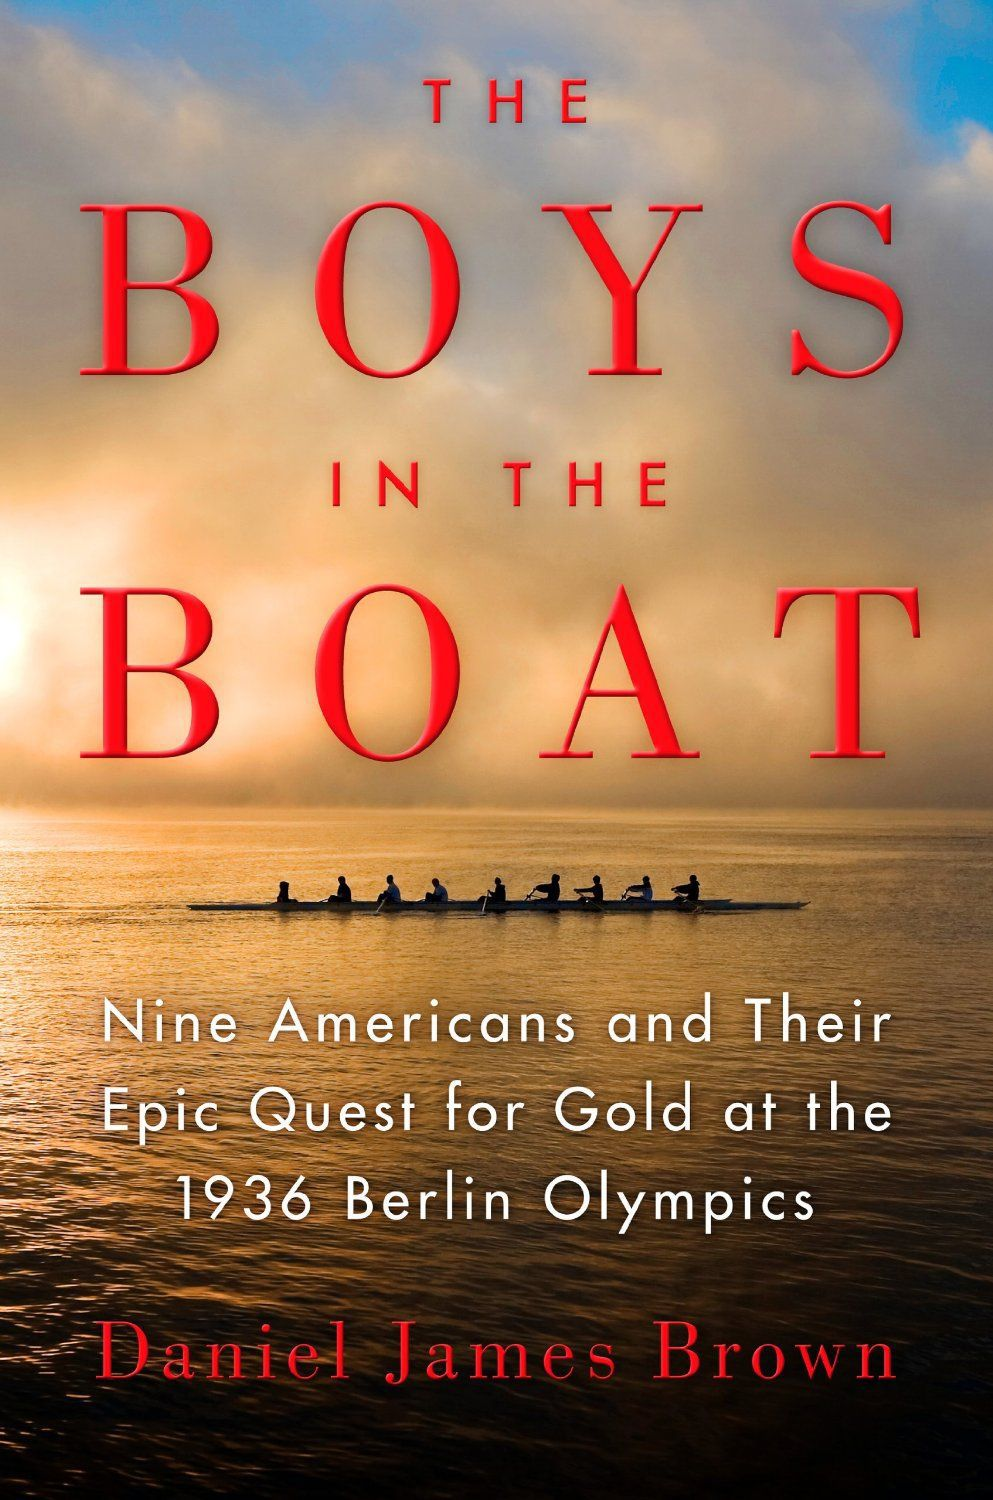 1936 rowing team's quest for gold engaging